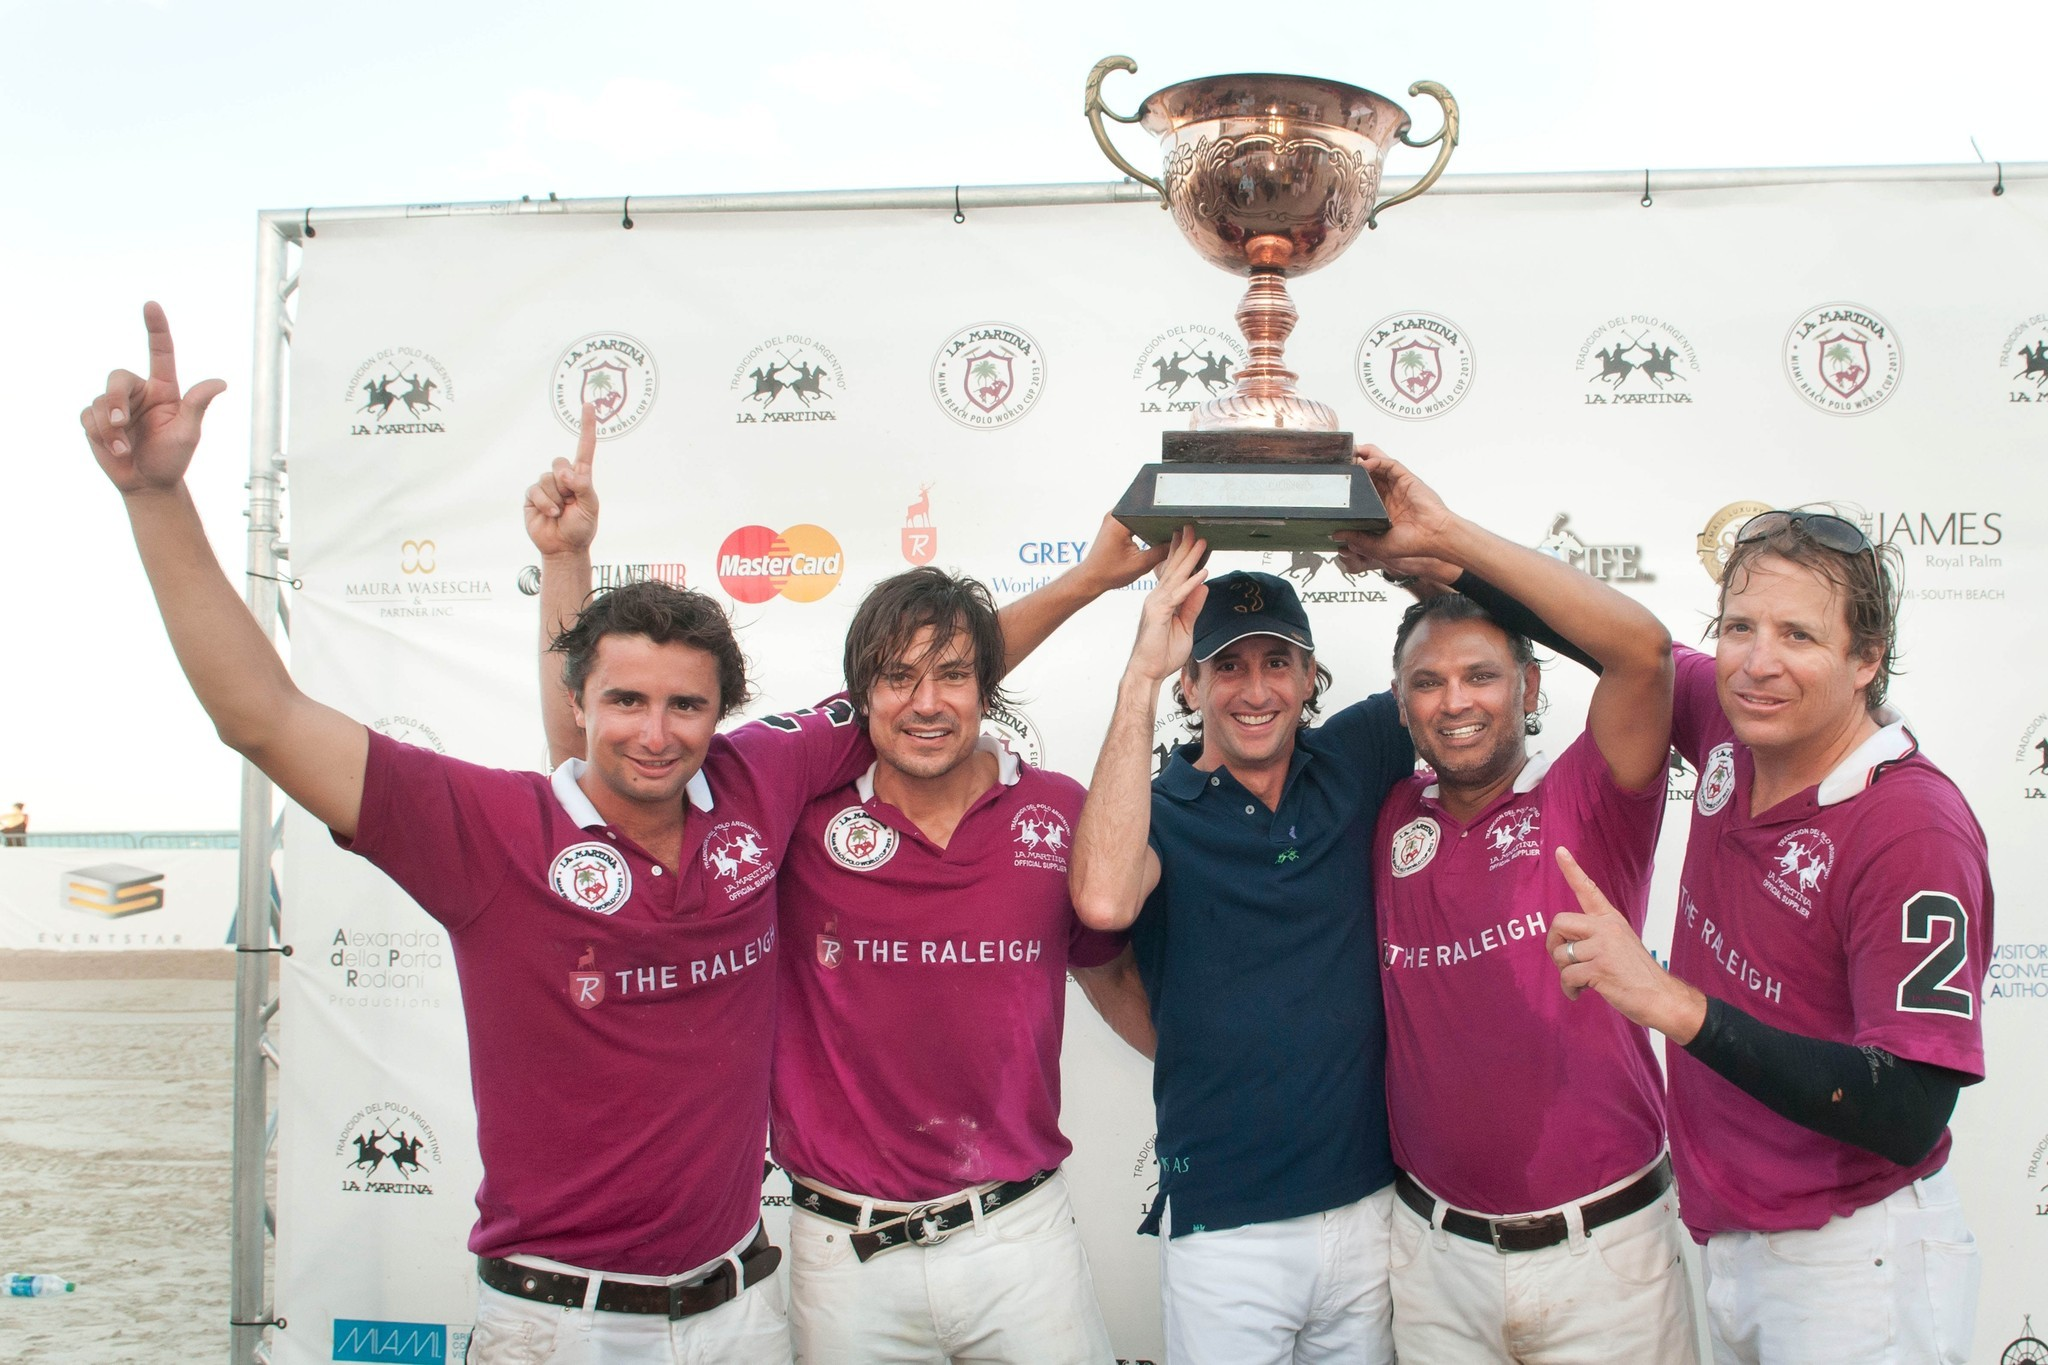 Miami Beach Polo - Juan Monteverde, David Totari, Bash Kazi and John Gobin] with Adrian Simonetti, CEO of La Martina.